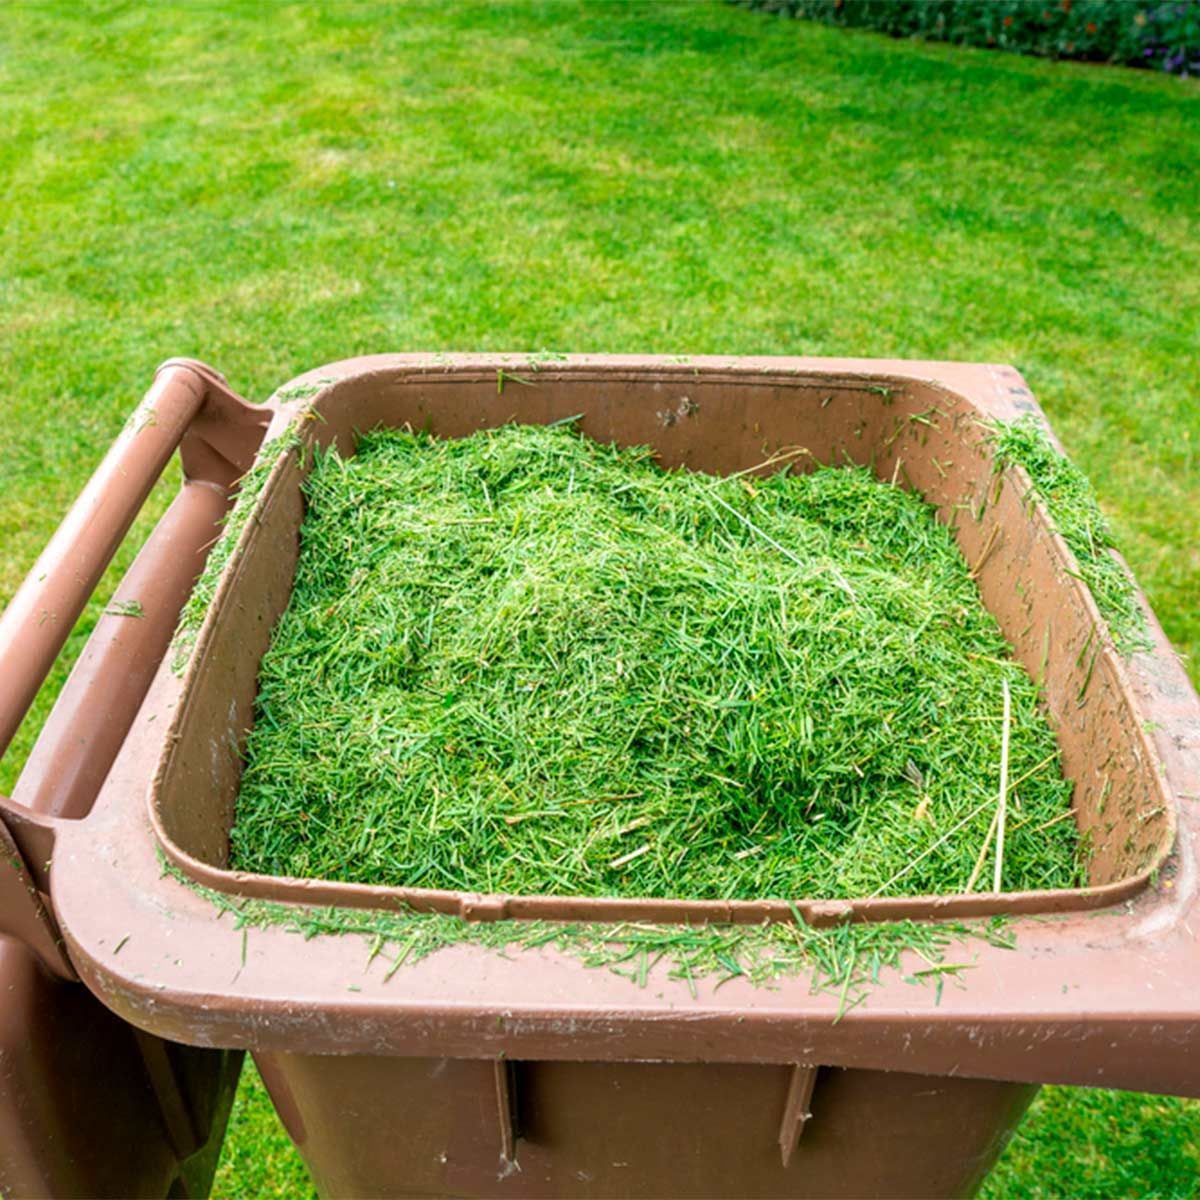 Mowing Wet Grass Here Are The Top 20 Tips To Know Growing